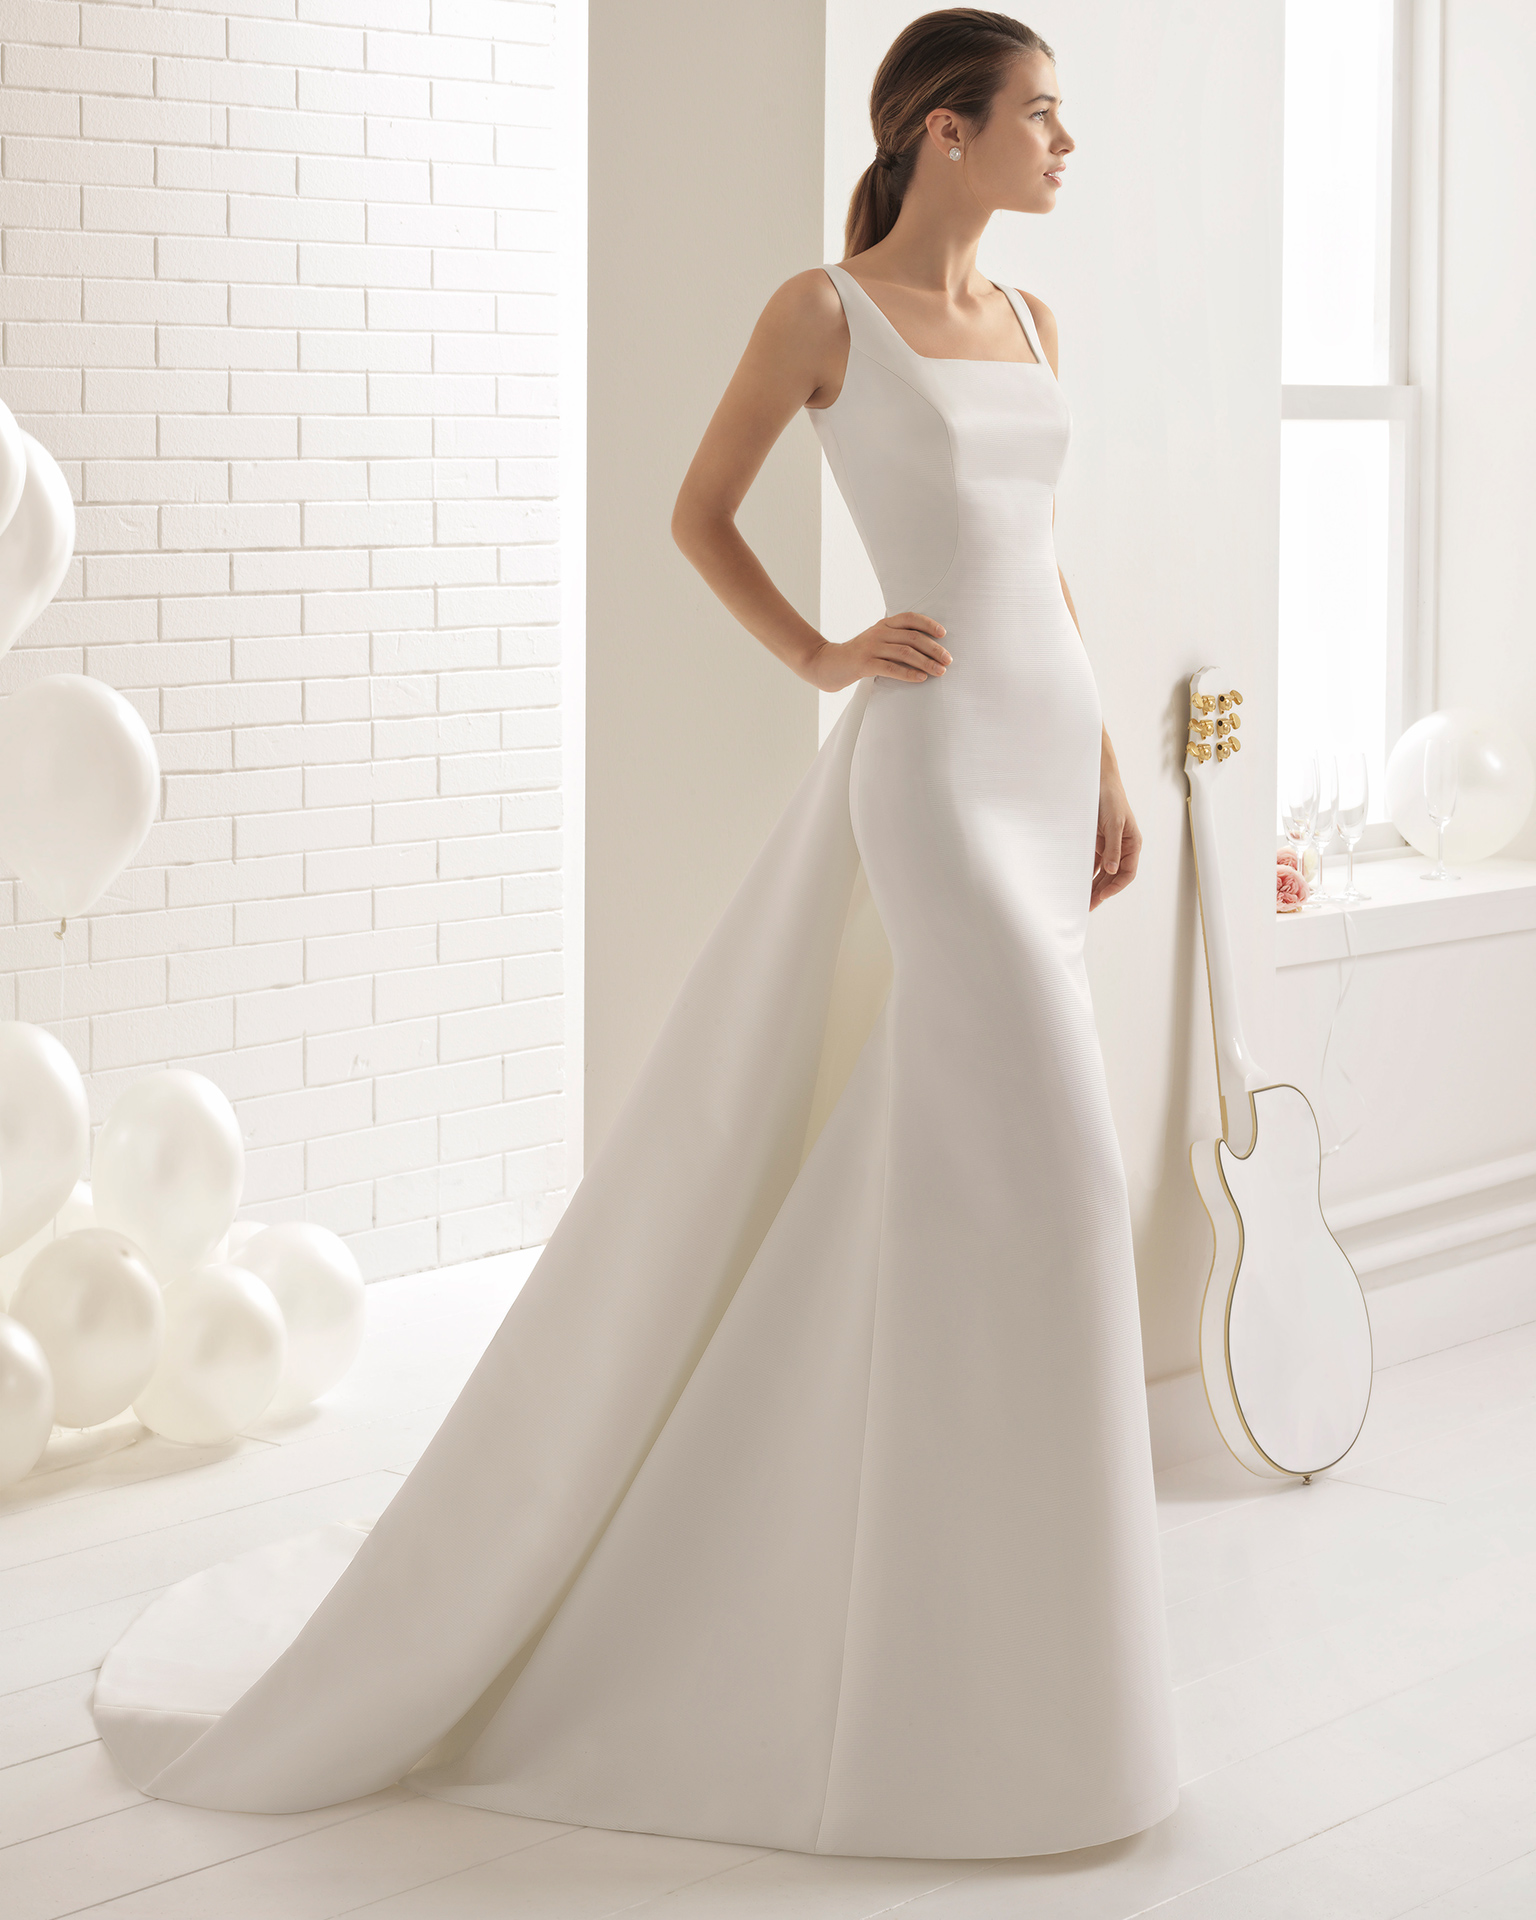 Ottoman sheath wedding dress with square neckline, round opening in back and train.